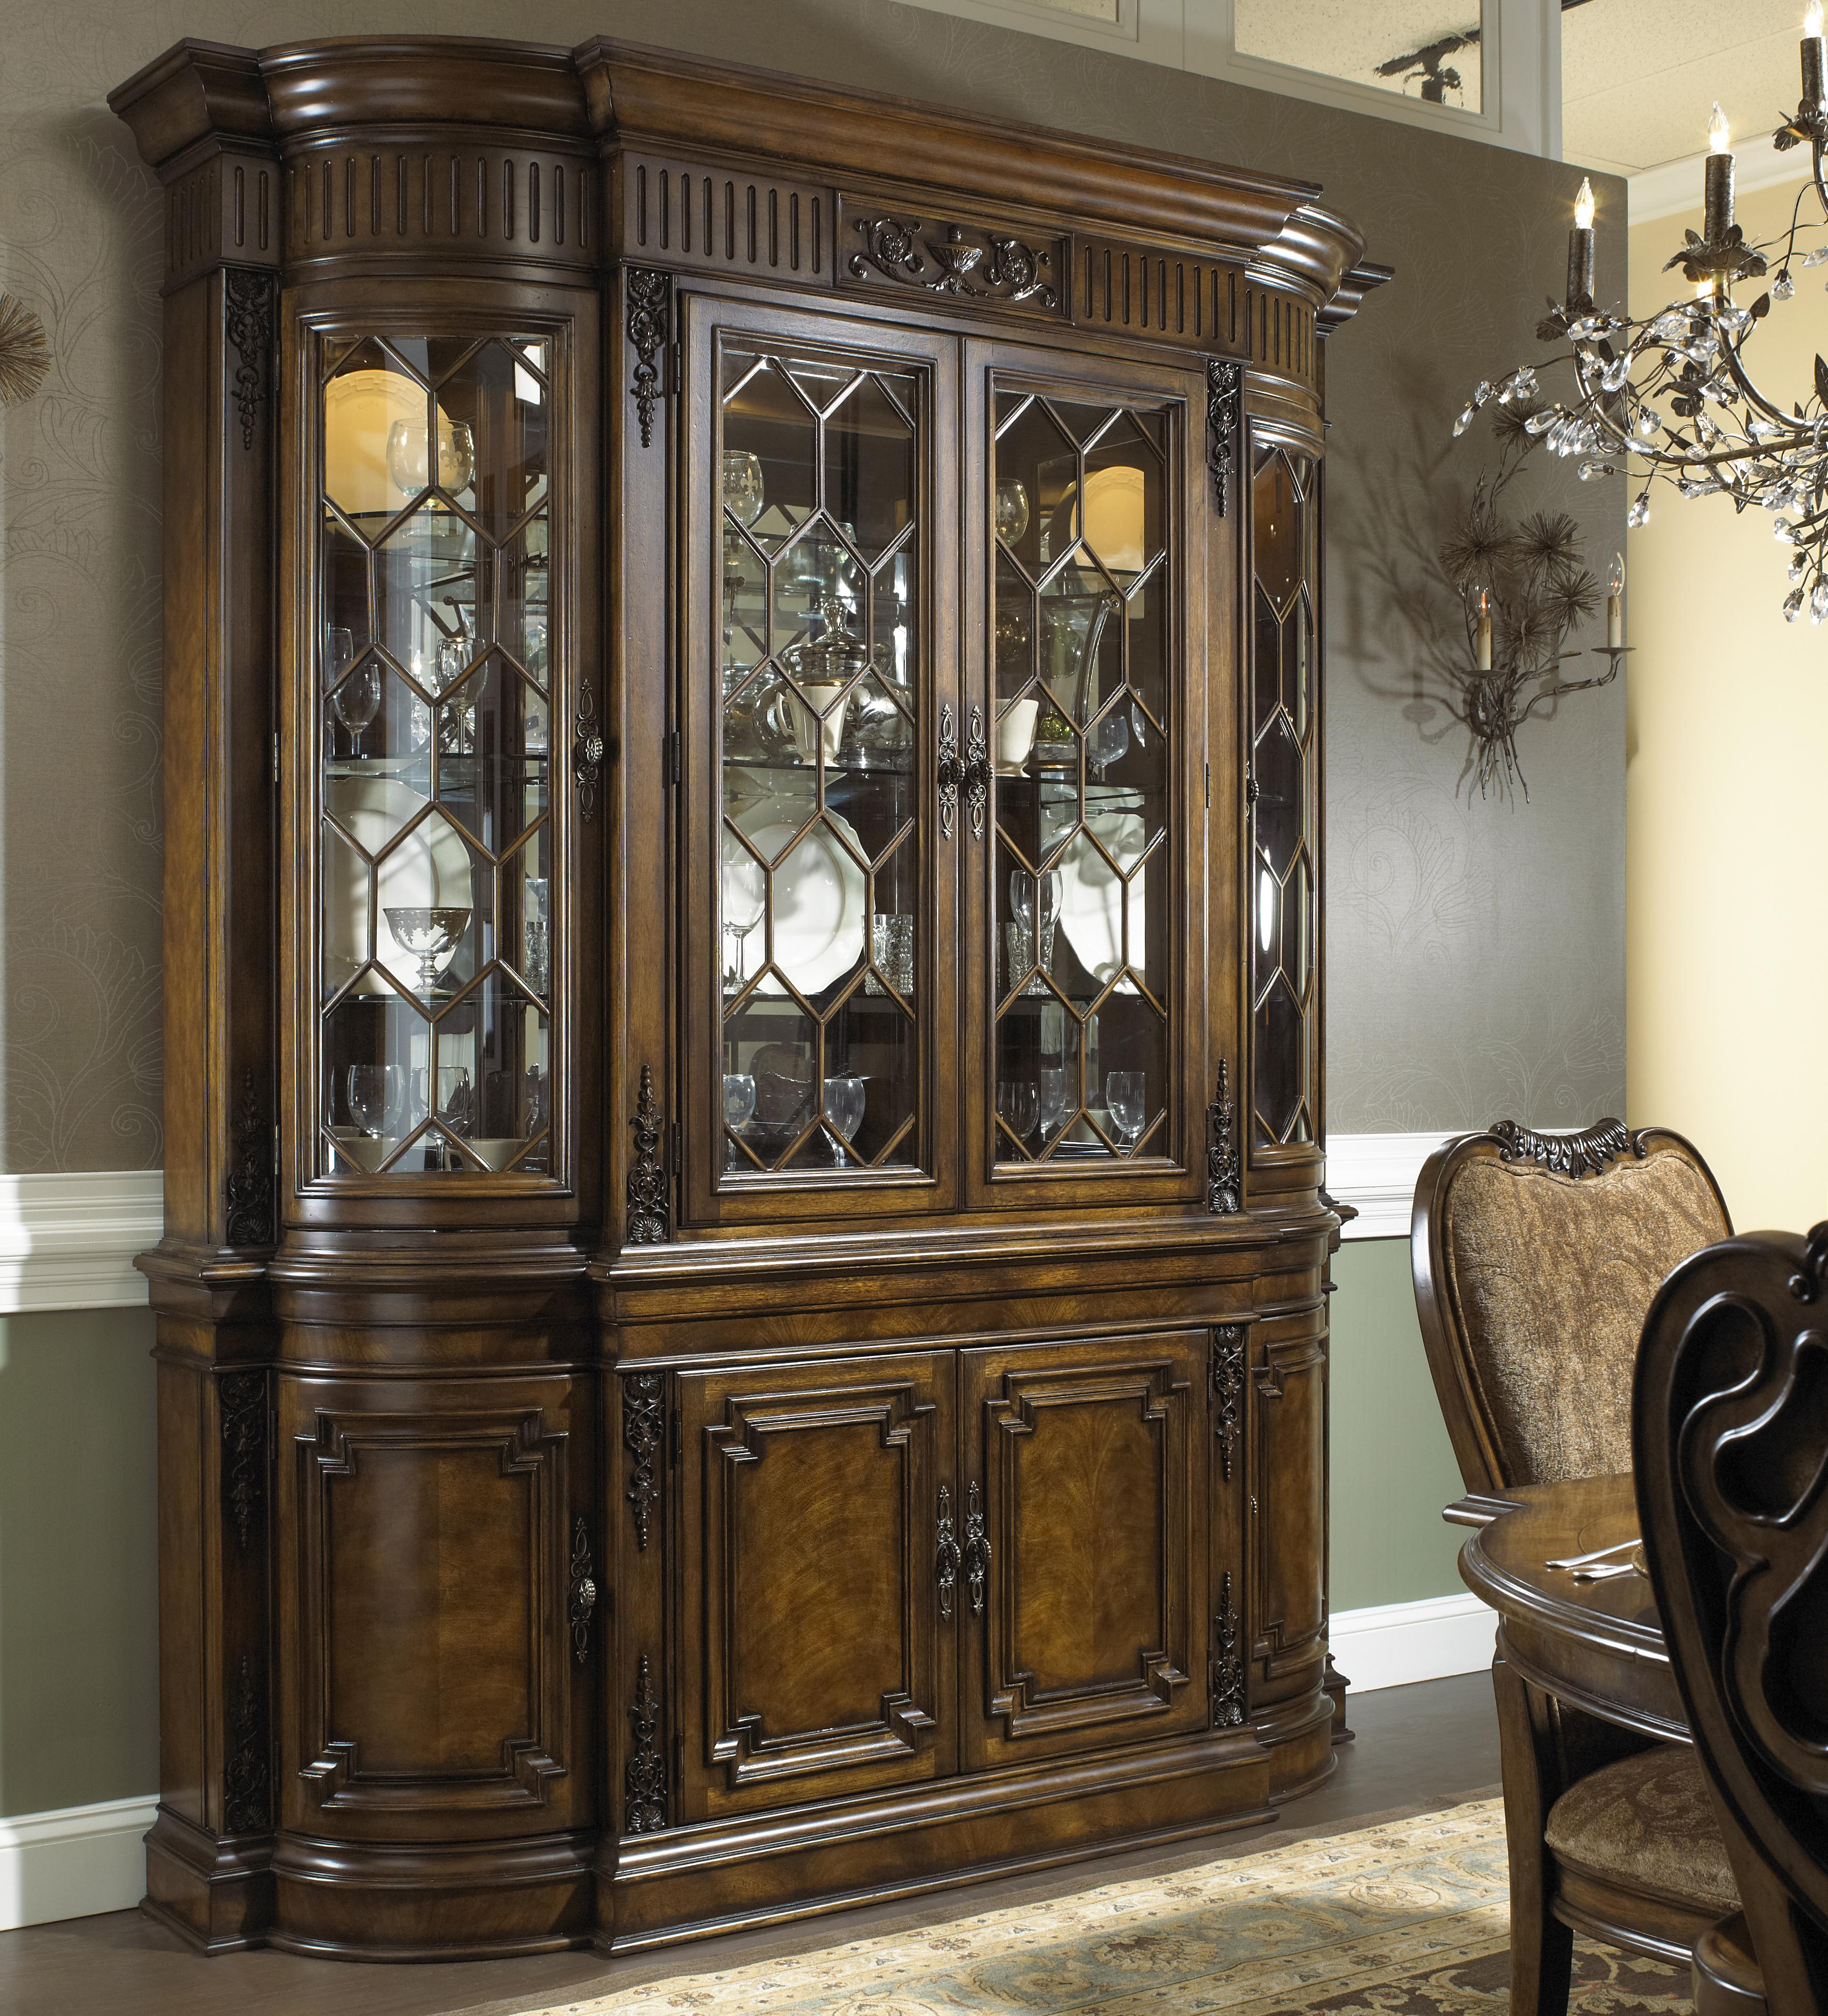 Fine Furniture Design Belvedere Formal Antique Style Break Front China Cabinet With Buffet Bottom Stuckey Cabinets